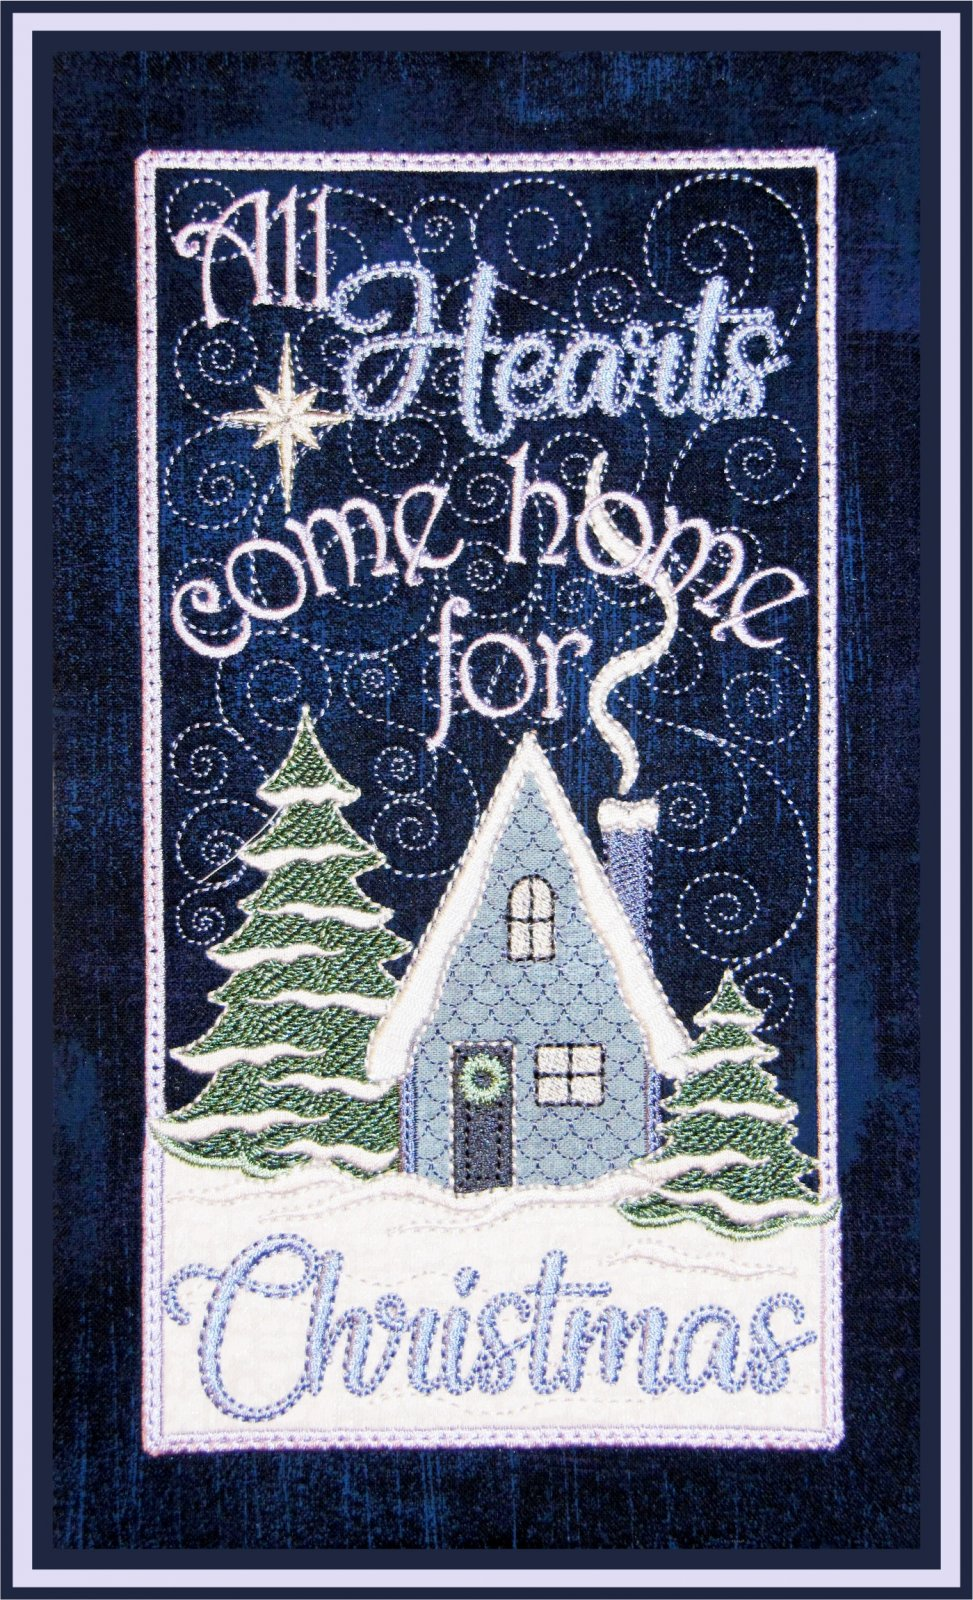 All Hearts Come Home For Christmas - Table Top Display